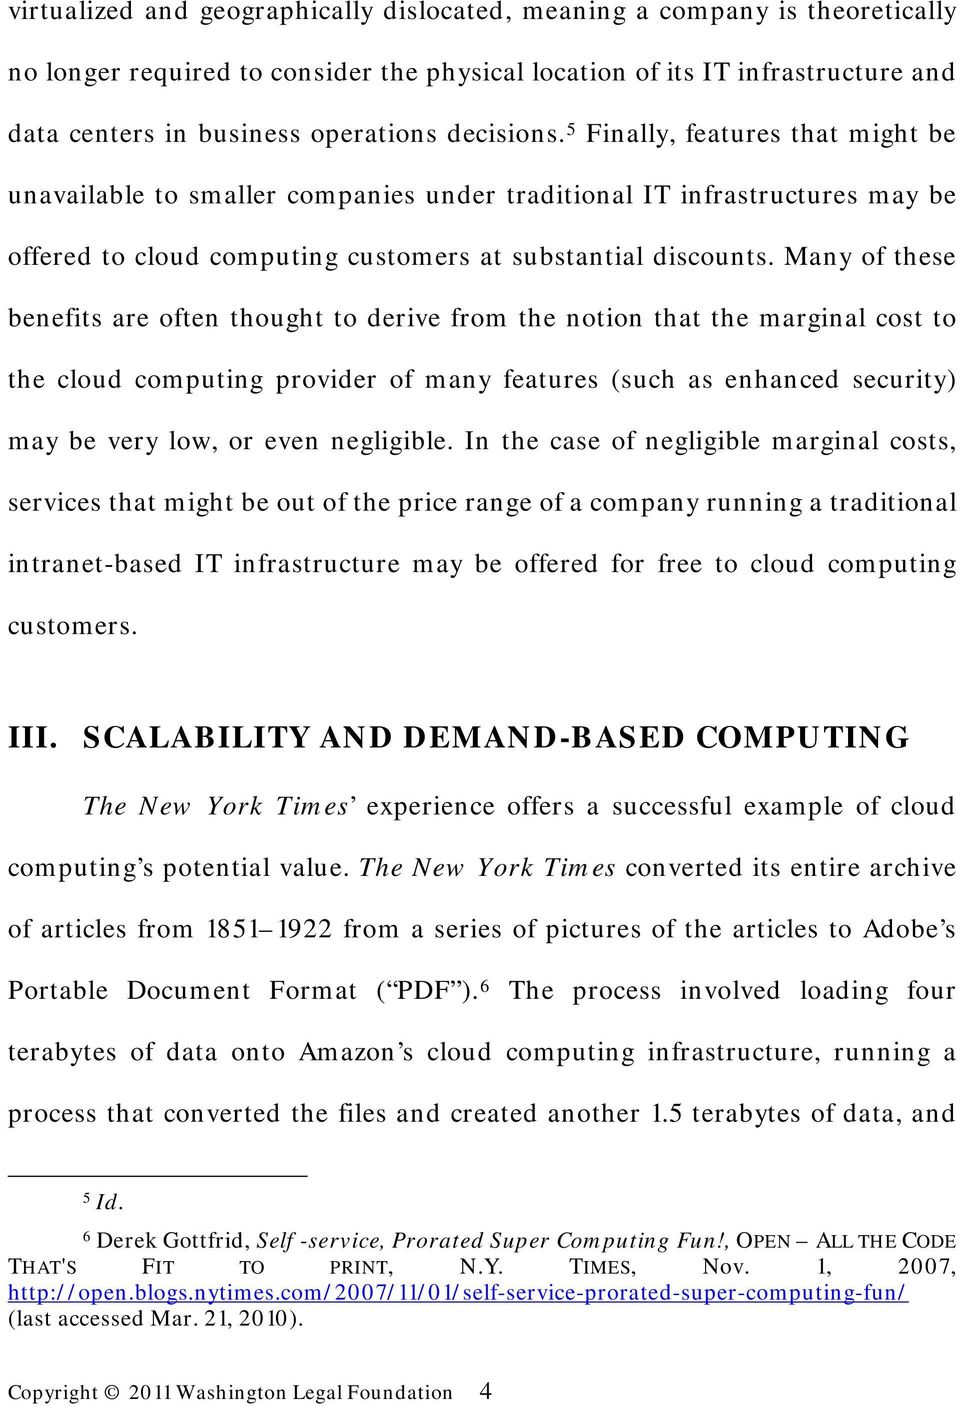 Many of these benefits are often thought to derive from the notion that the marginal cost to the cloud computing provider of many features (such as enhanced security) may be very low, or even